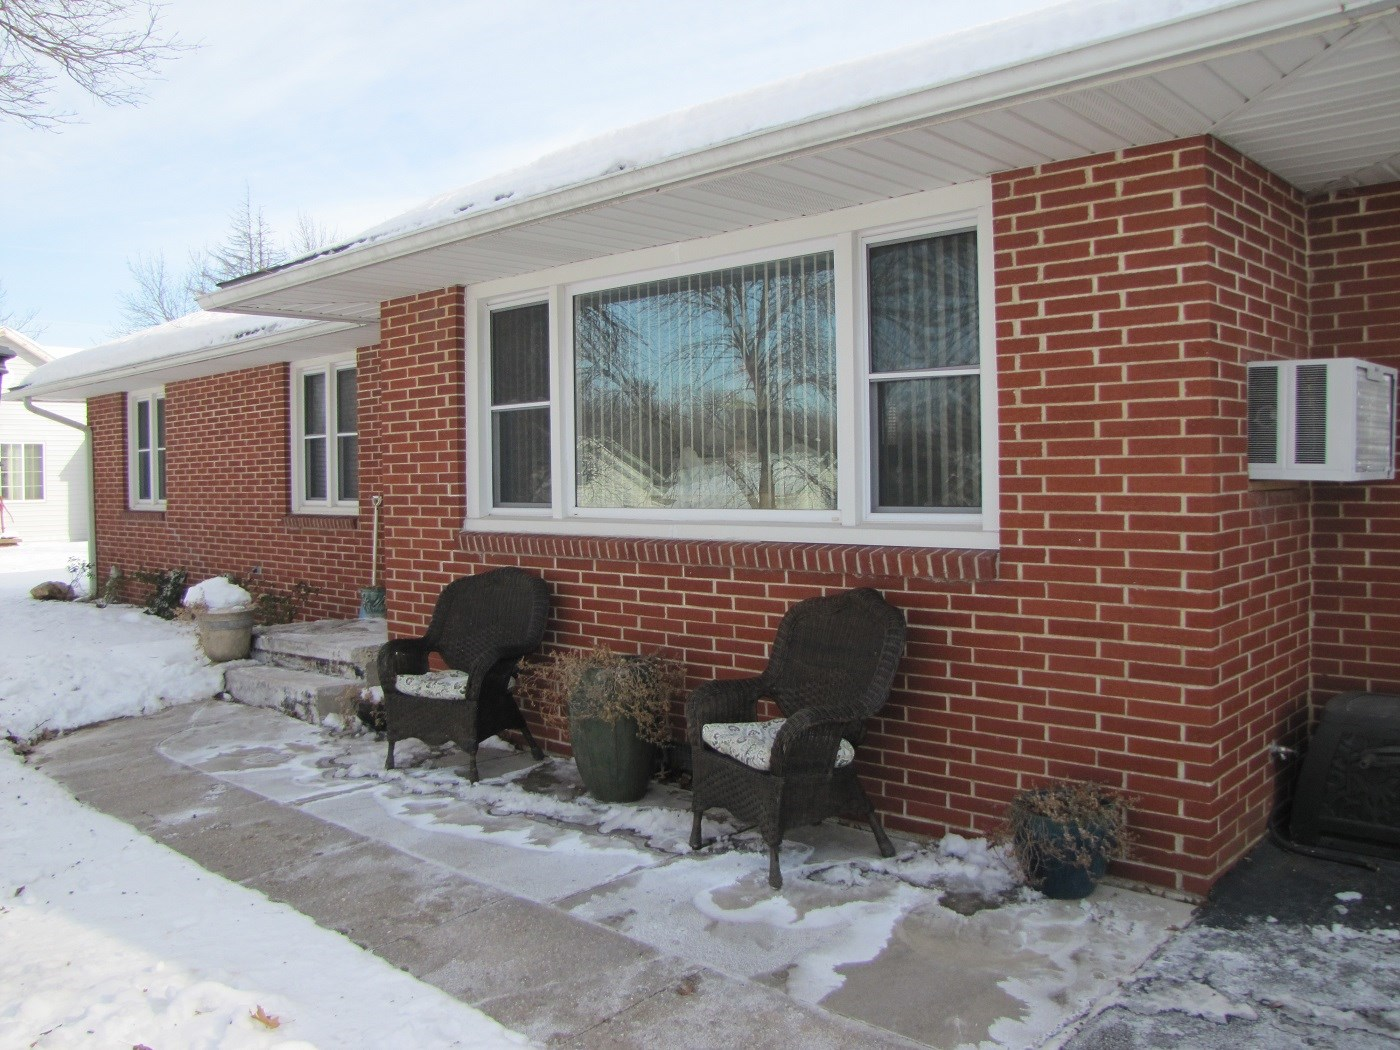 NORTHERN MO RESIDENTIAL HOME FOR SALE, MOVE IN READY HOME